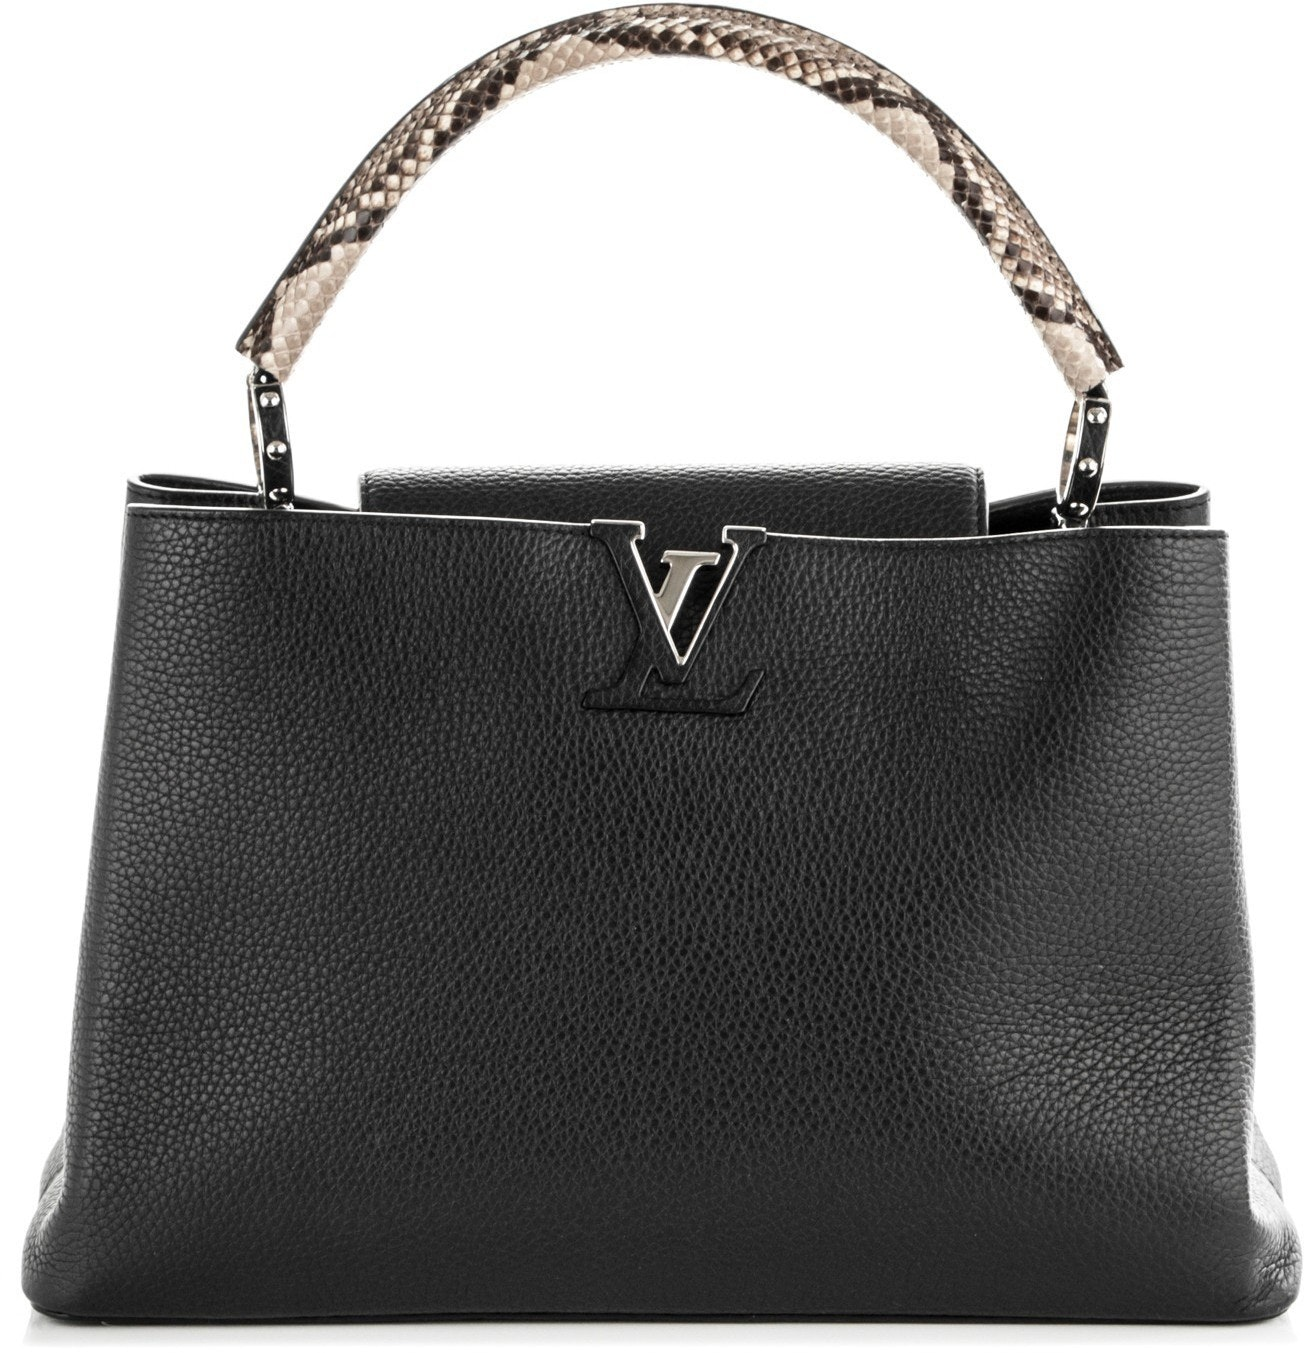 Louis Vuitton Capucines Python Handle Taurillon MM Noir Black